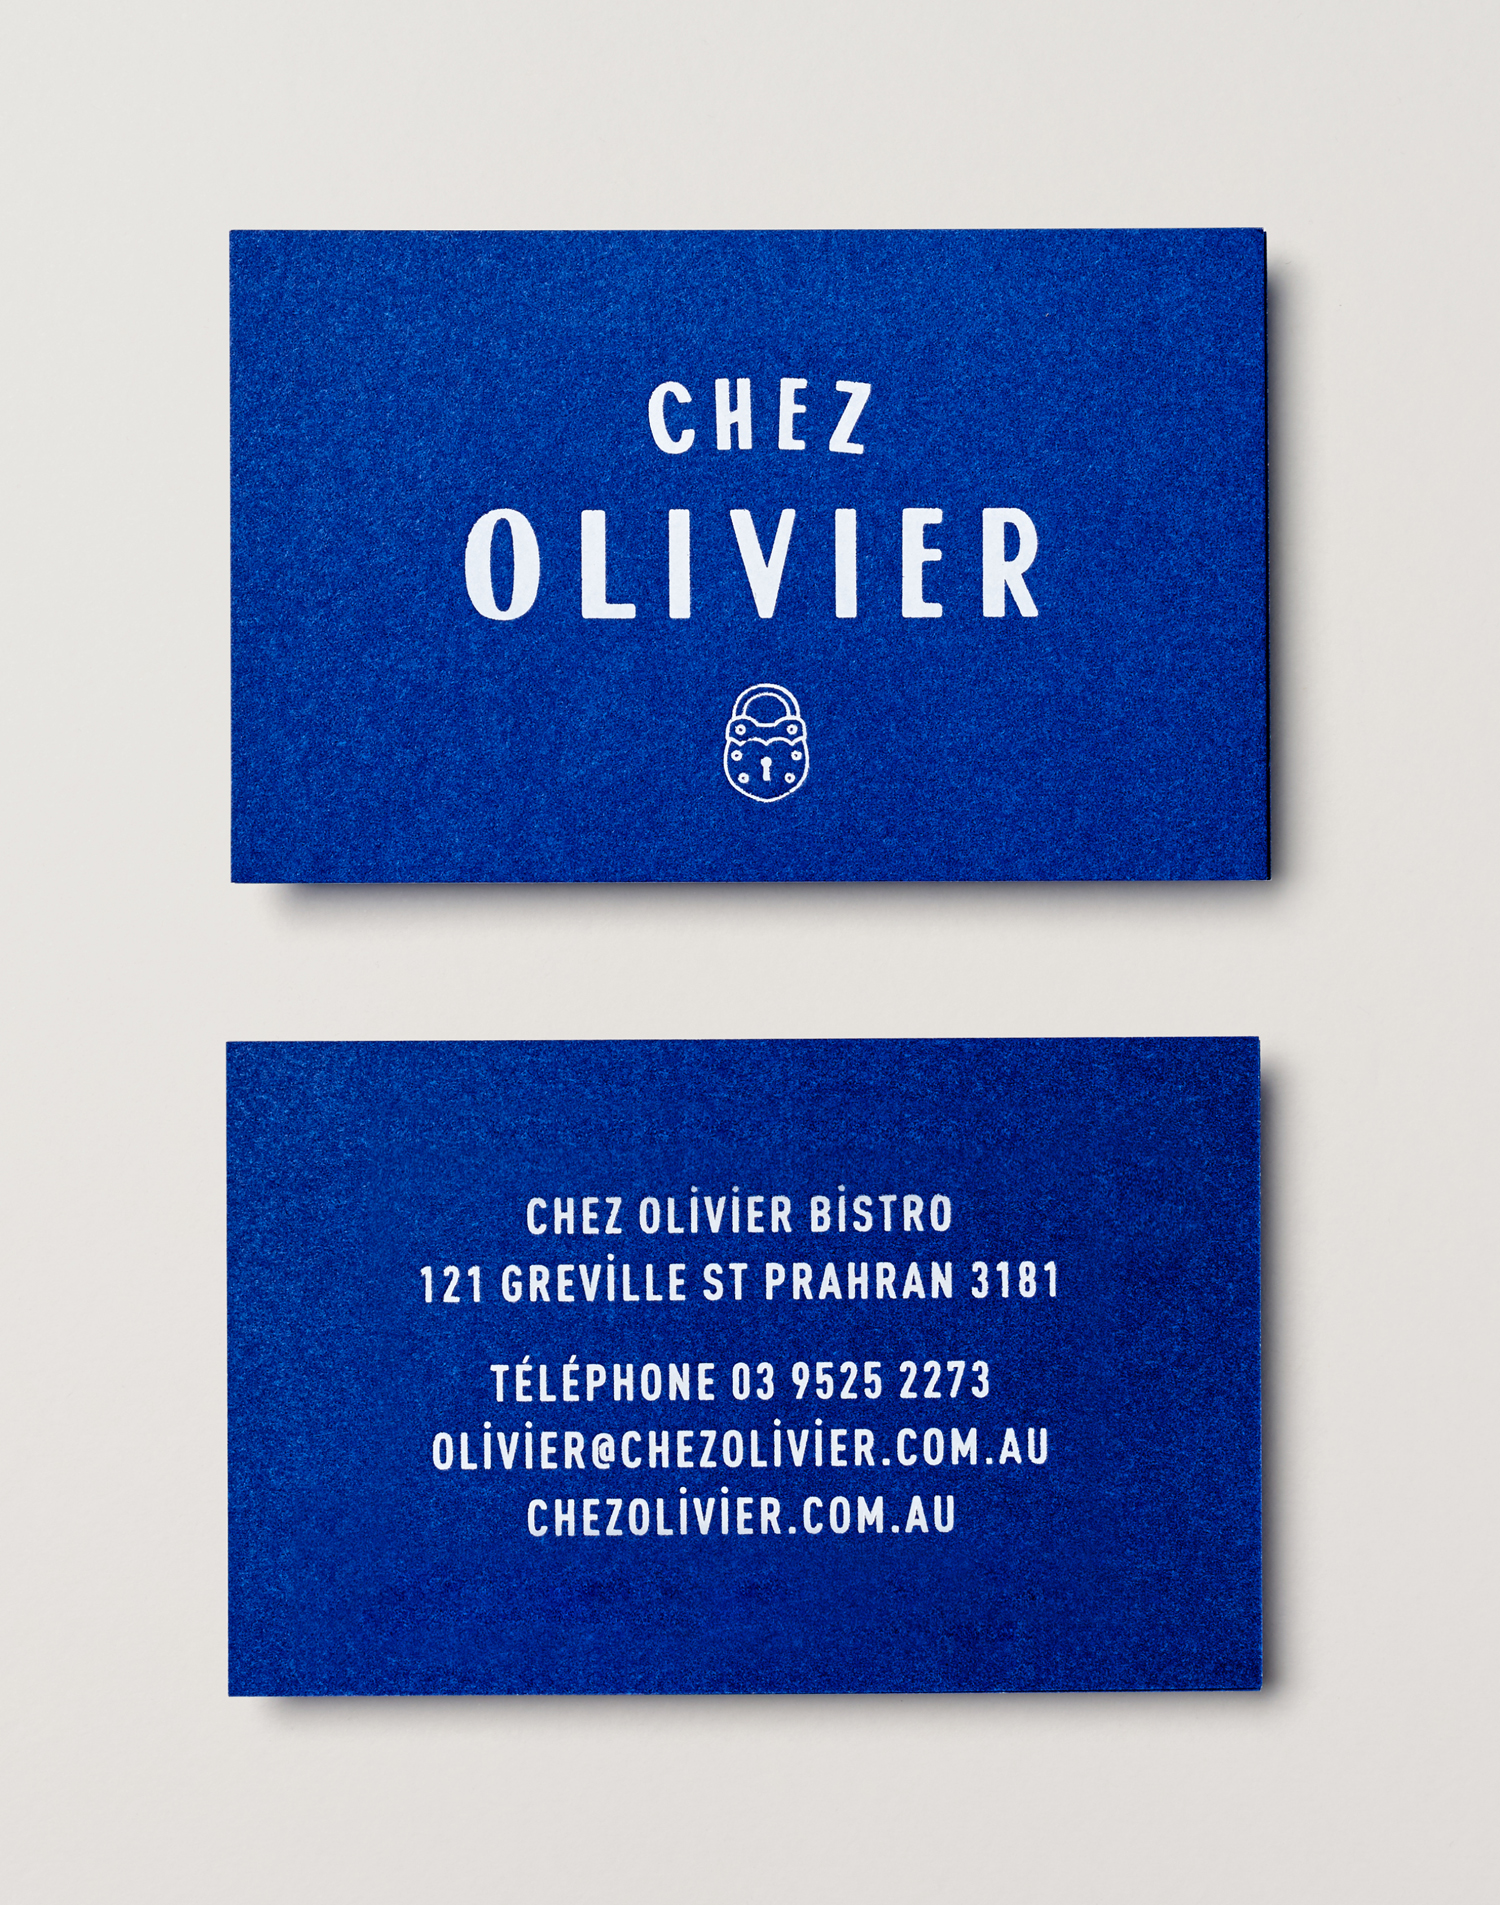 Brand identity and business cards designed by Swear Words for Melbourne-based French bistro Chez Olivier.